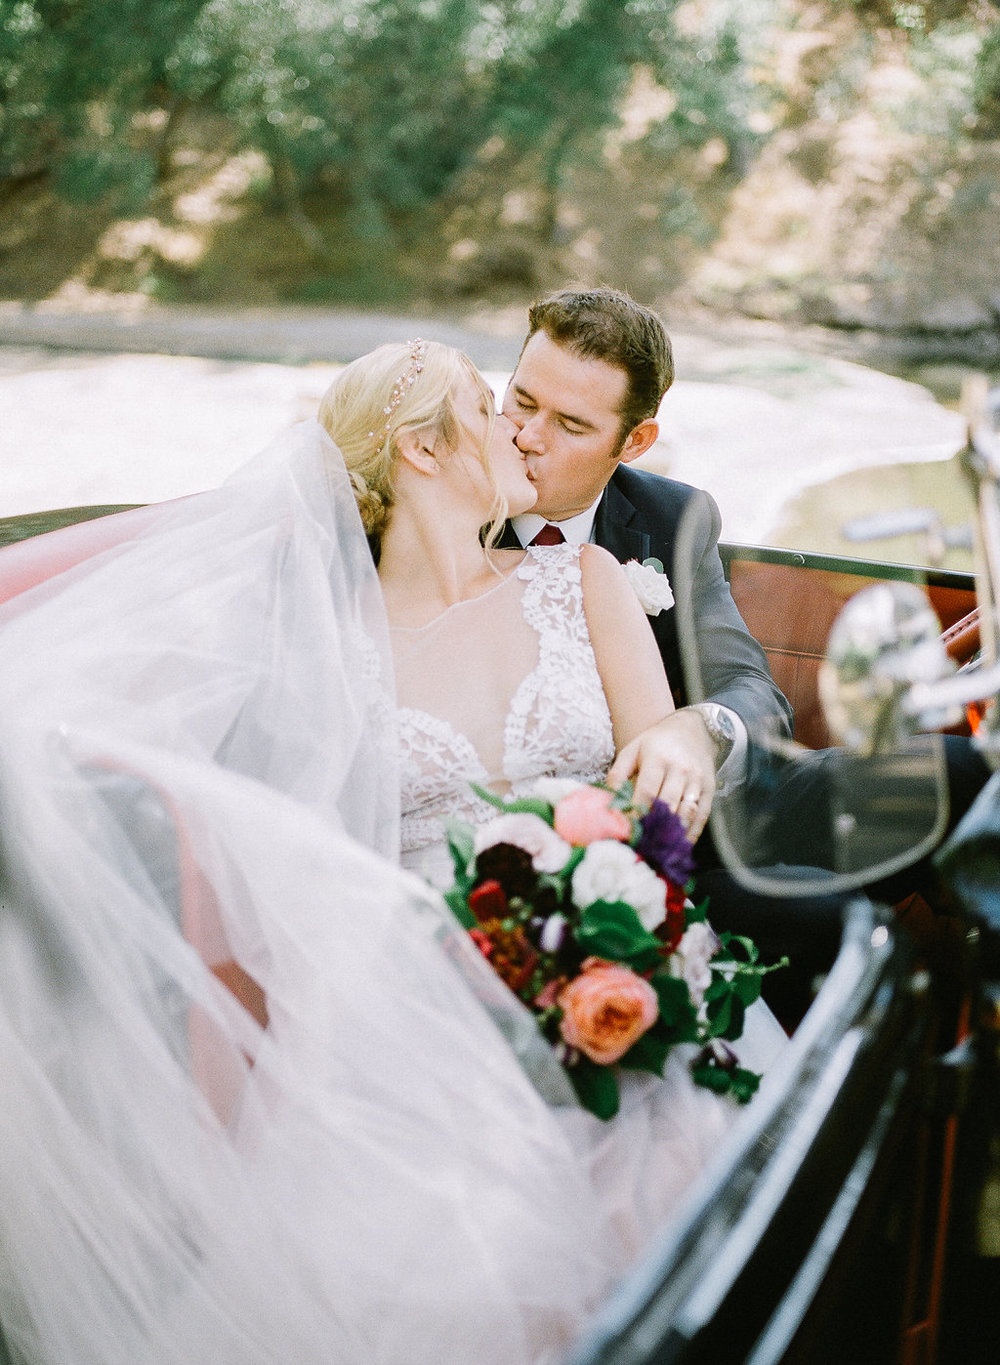 Vintage car, bride and groom portrait | Fallbrook Treehouse | Compass Floral | Wedding Florist in San Diego and Southern California | Allie Lindsey Photography